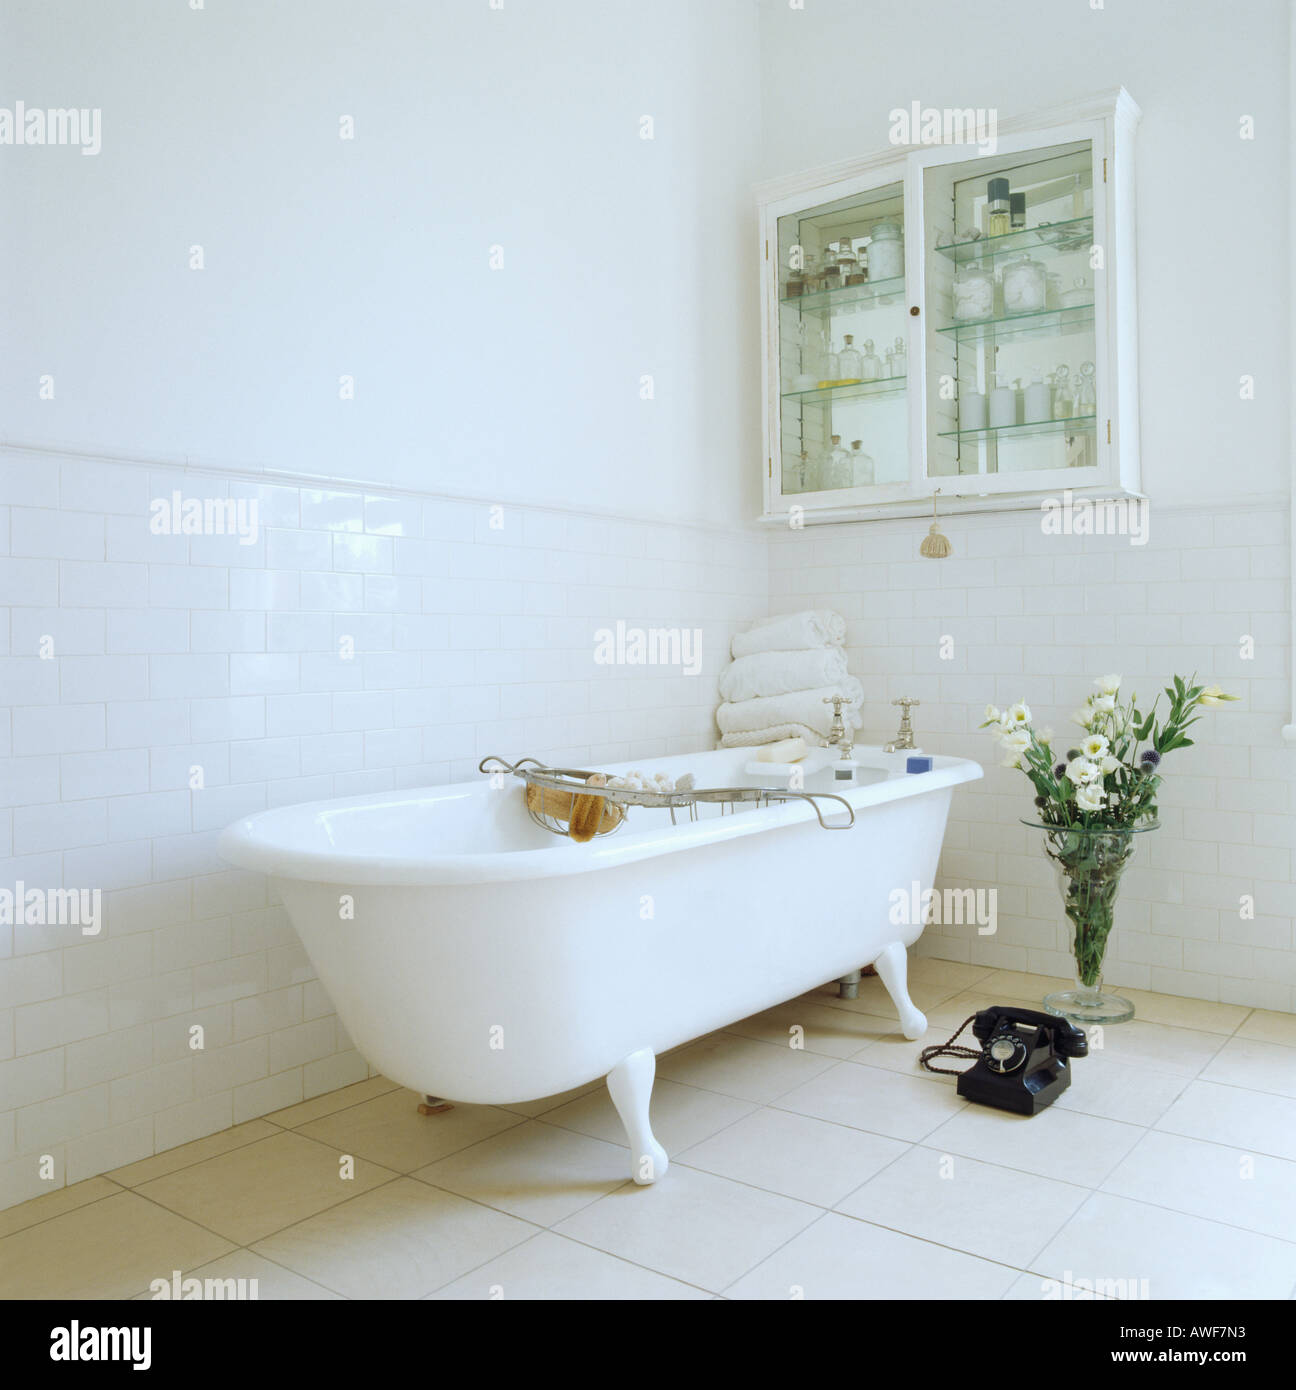 Traditional white roll-top bath in modern white bathroom with alcove ...